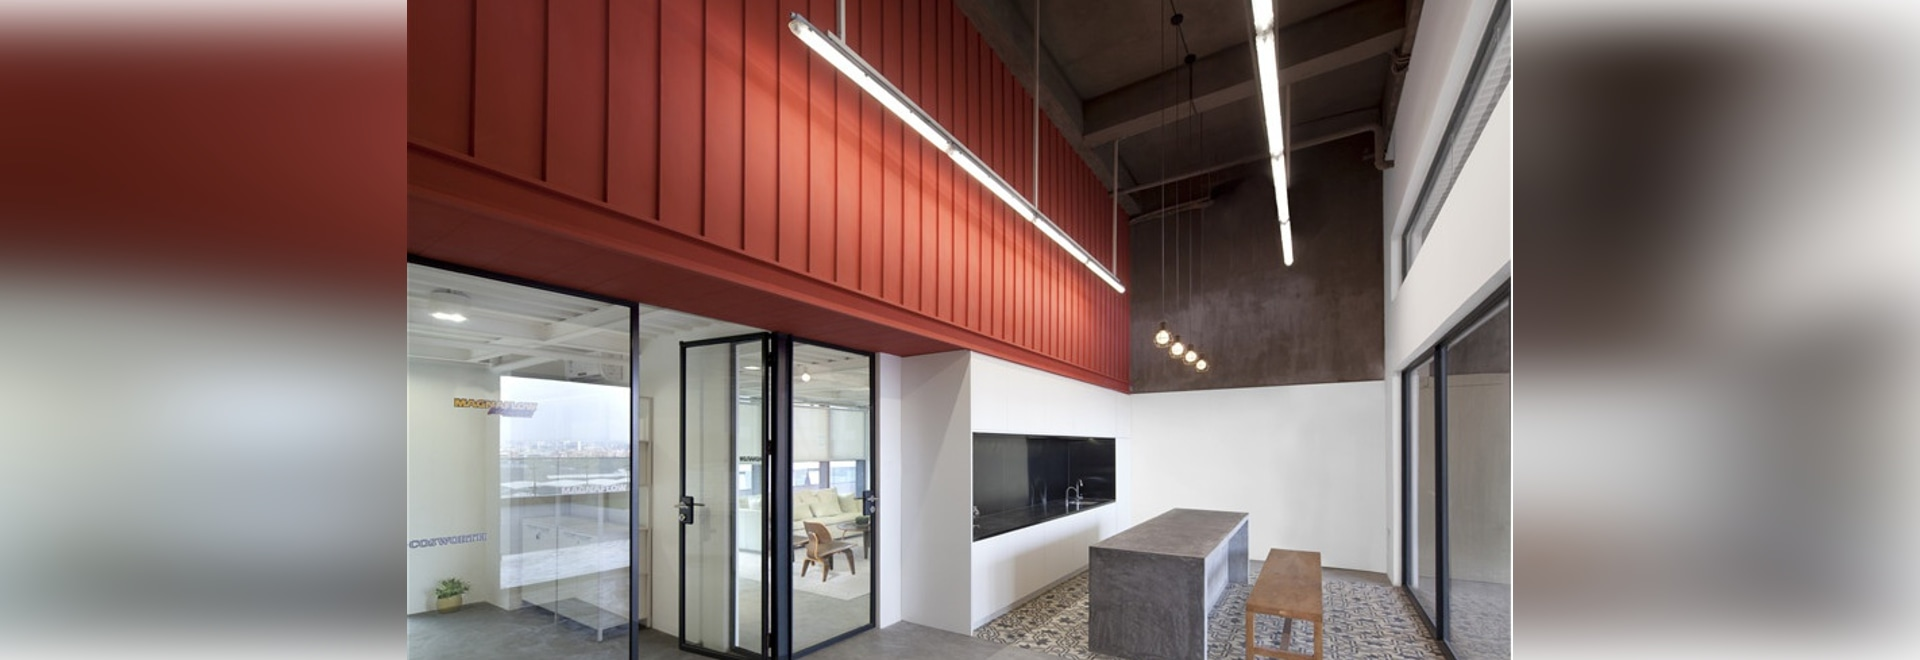 C.DD contrasts textiles and materials for office in foshan, china